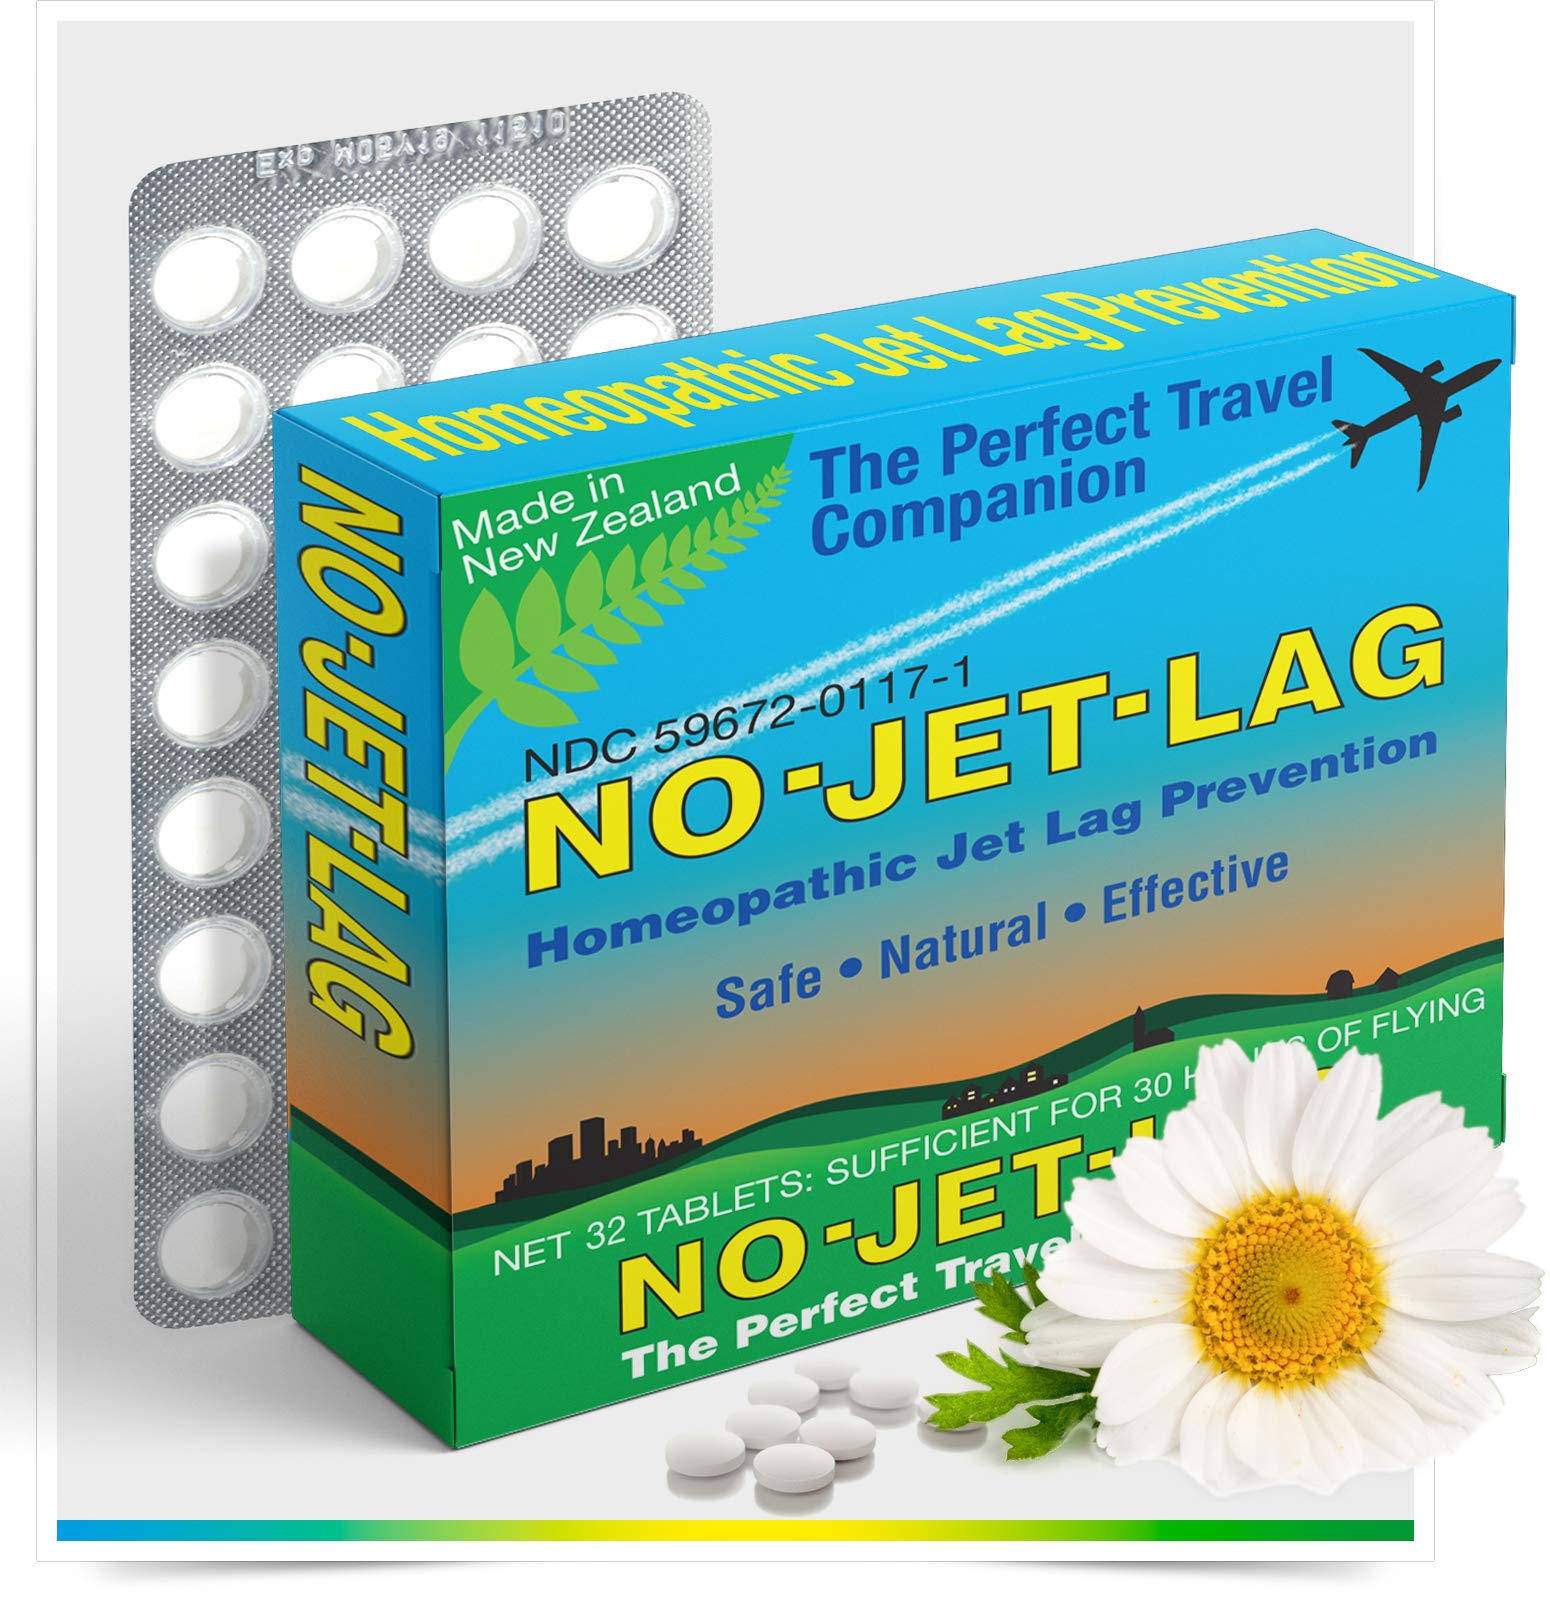 Miers Labs No Jet Lag Homeopathic Remedy + Fatigue Reducer for Airplane Travel Across Time Zones with All Natural Ingredients - 32 Count Chewable Tablets (for up to 50+ hours of flying) by Miers Labs